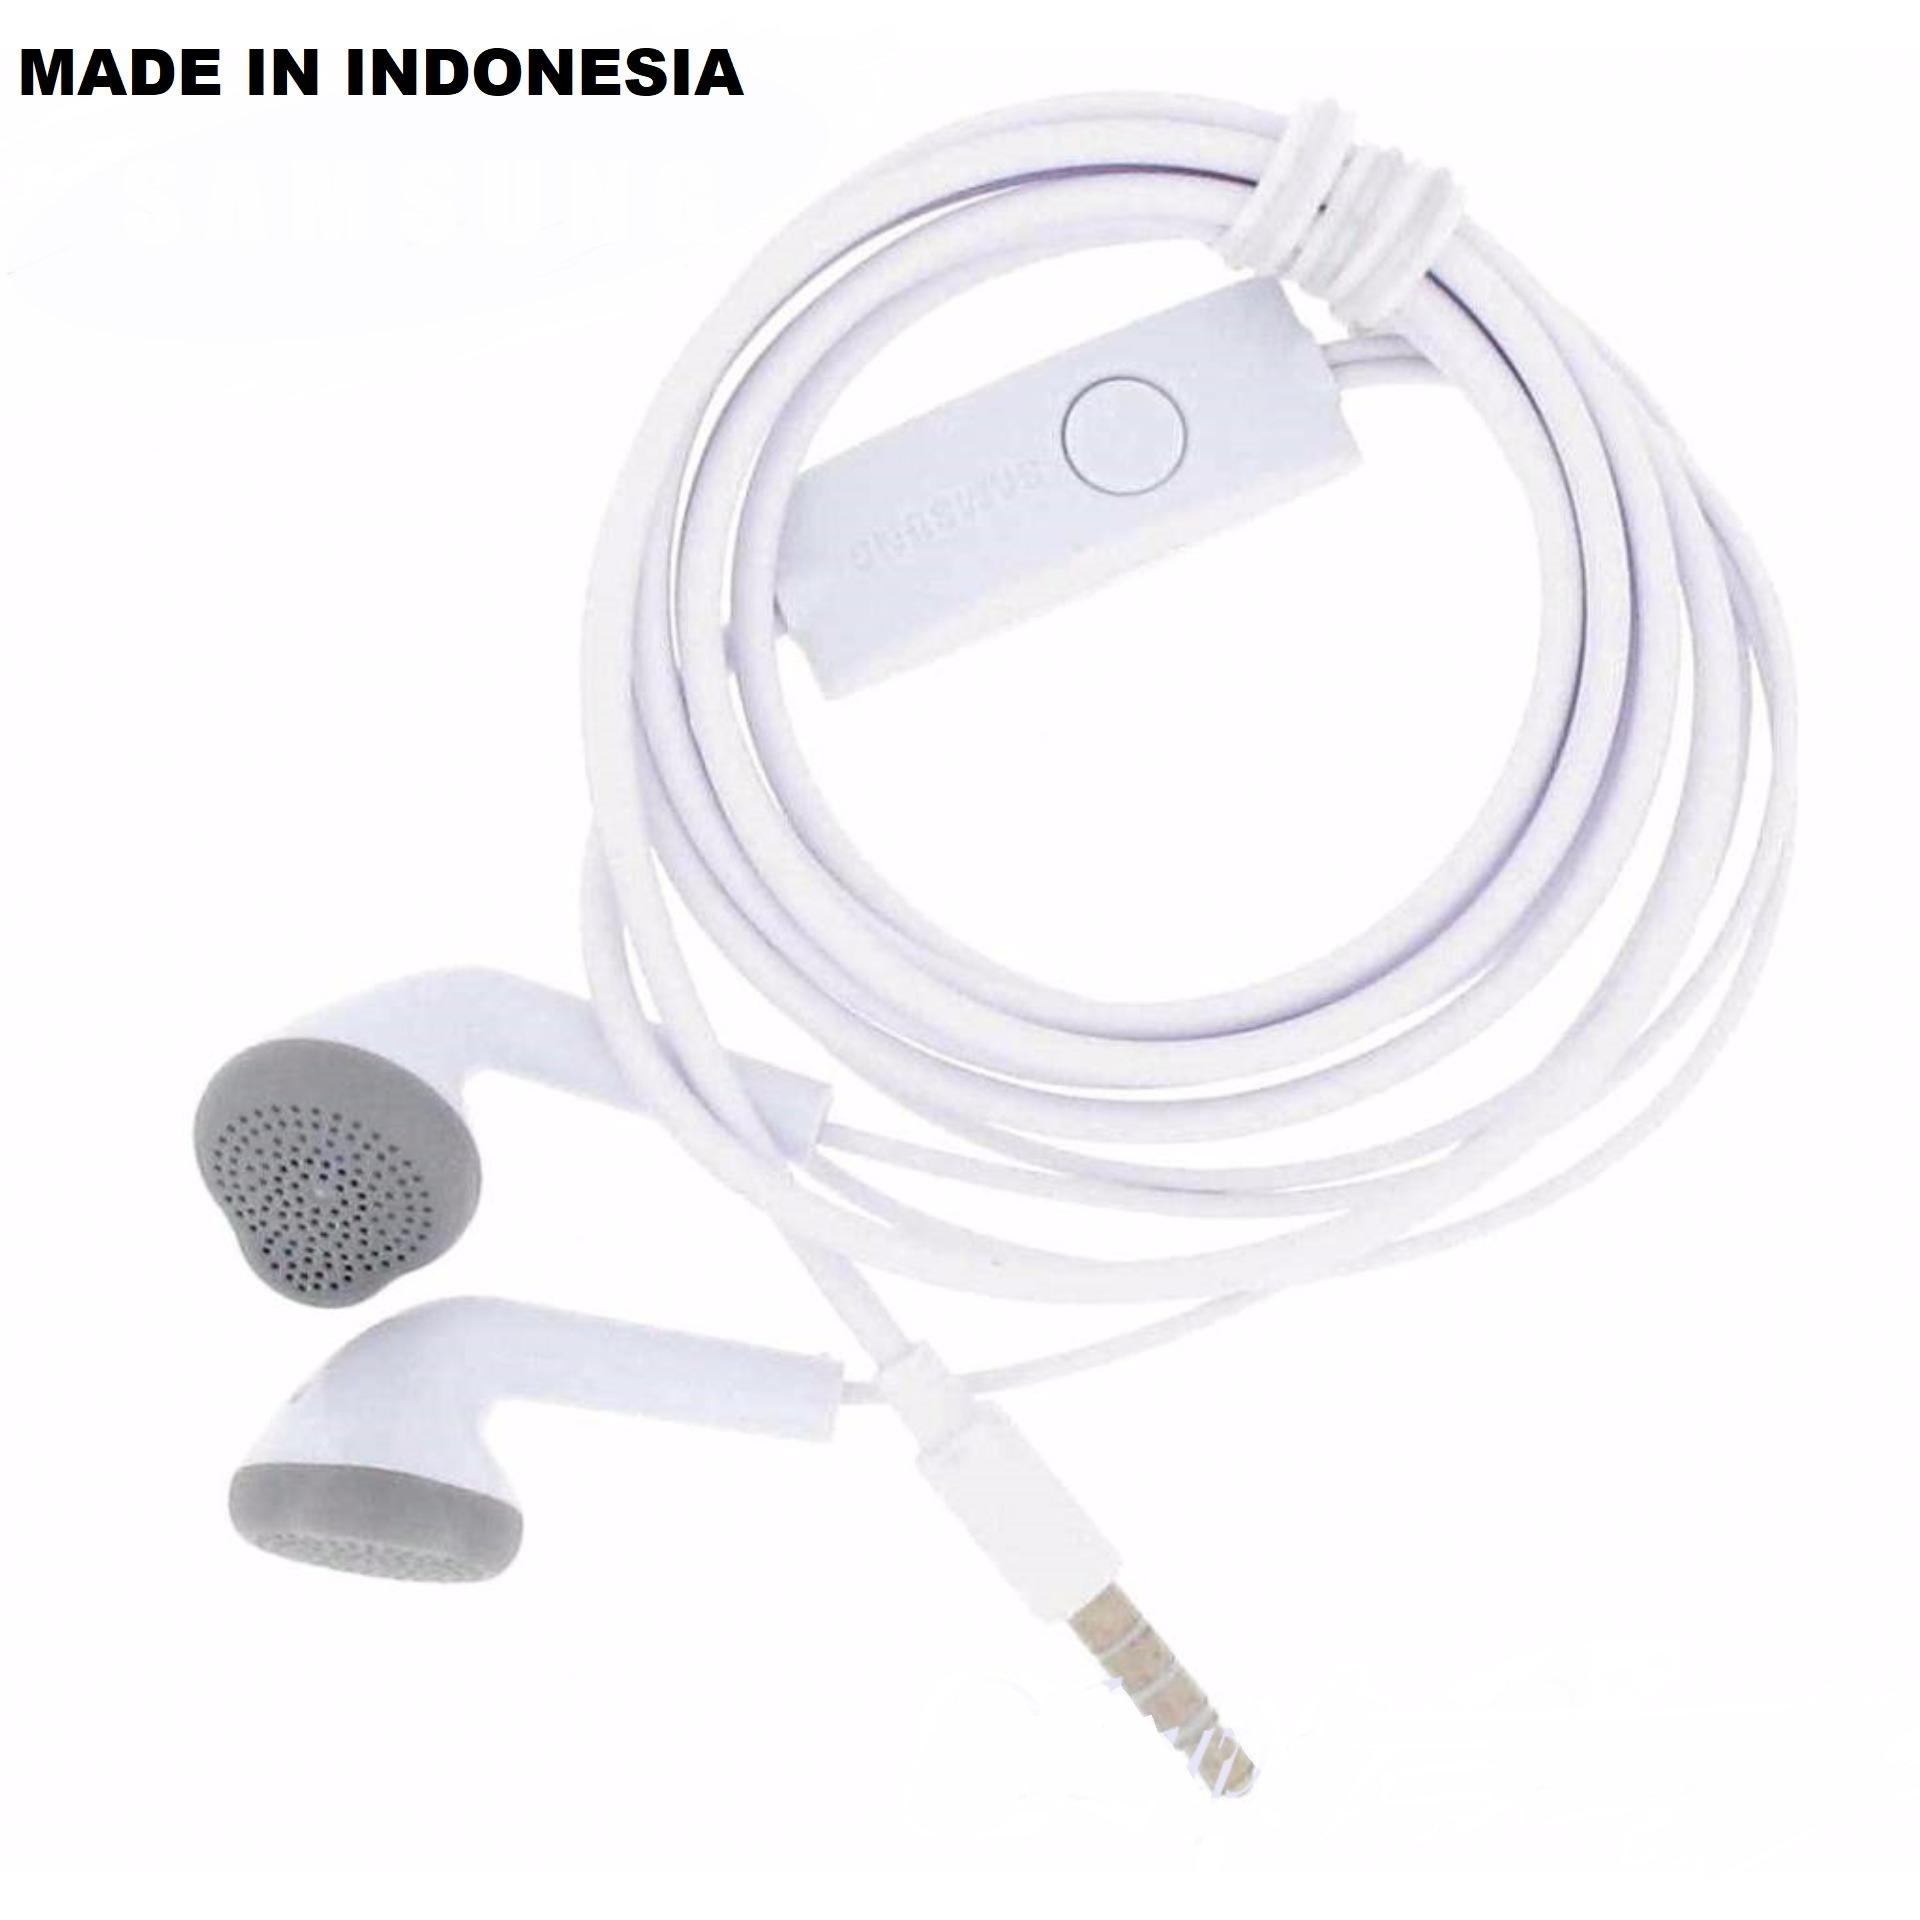 Grade AAA Headset Samsung Galaxy Original 100% J Series Made In Indonesia For All Smartphone Android Earphone Handsfree Jack 3.5mm - Putih